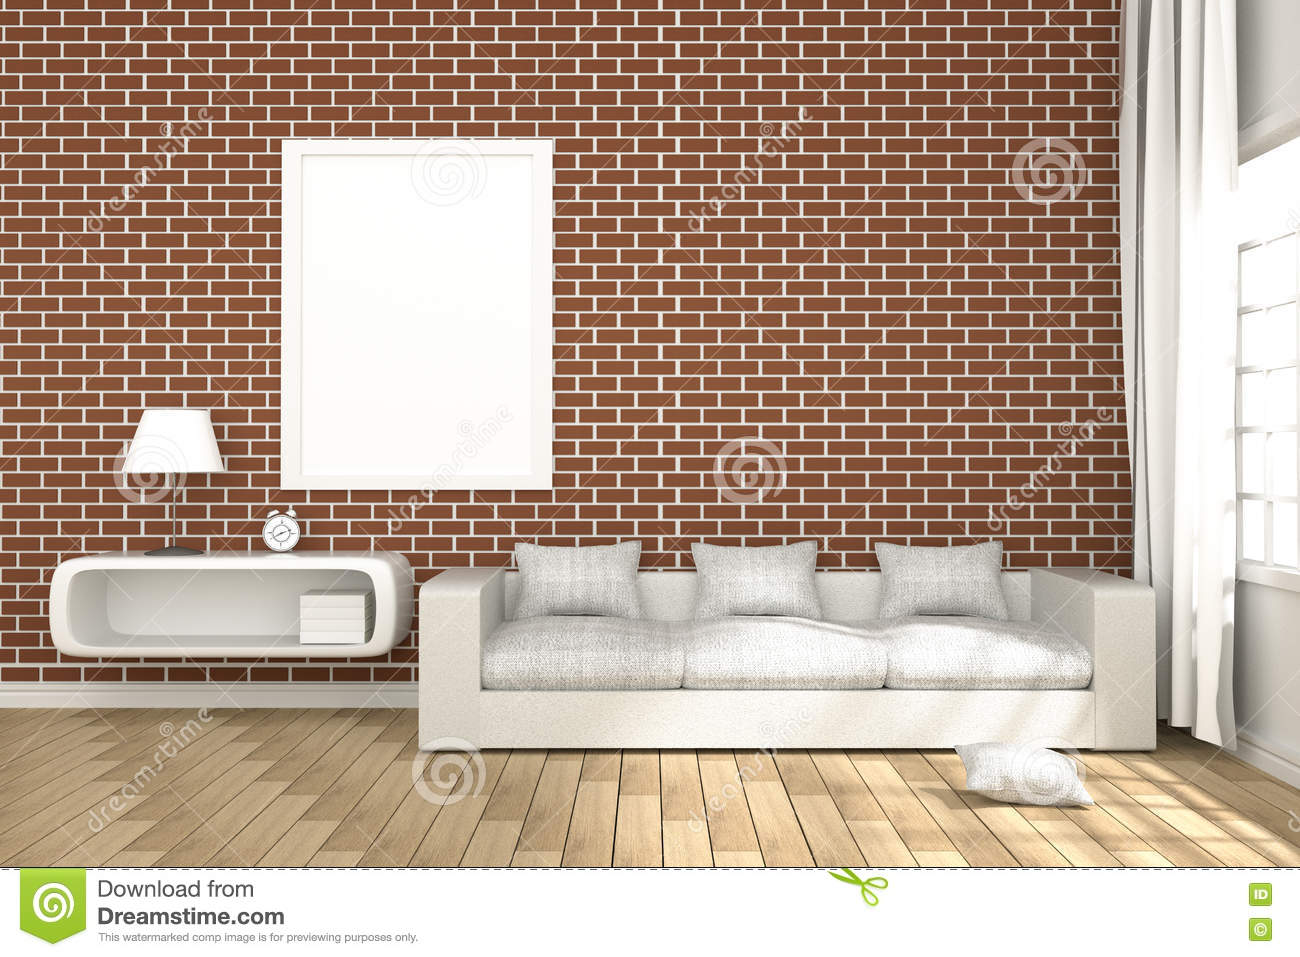 Download 3D Rendering : Illustration Of Cozy Living Room Interior With  White Book Shelf And